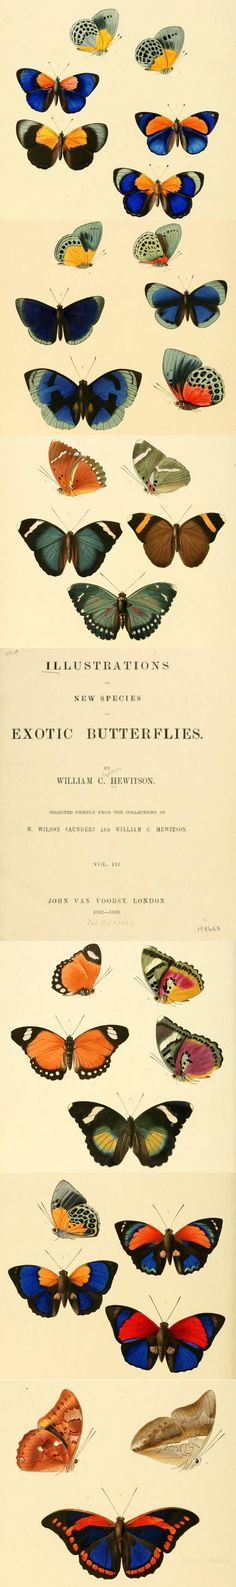 butterfly book from 1856